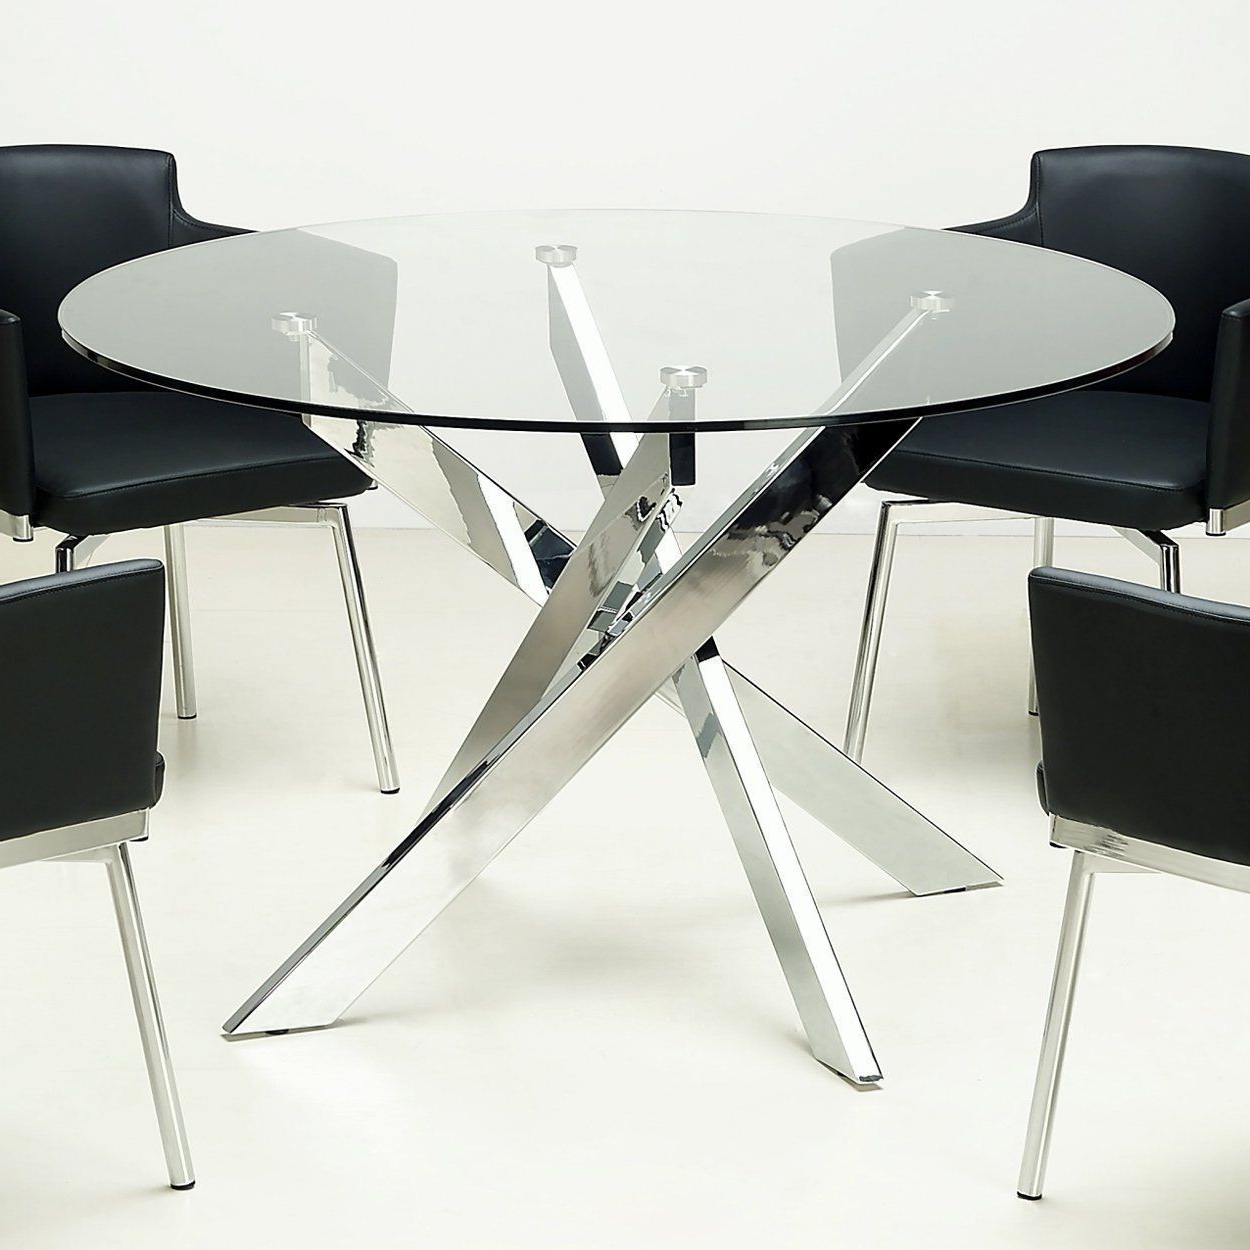 Most Recent Chrome Dining Tables With Tempered Glass Throughout Online Shopping – Bedding, Furniture, Electronics, Jewelry (View 14 of 25)